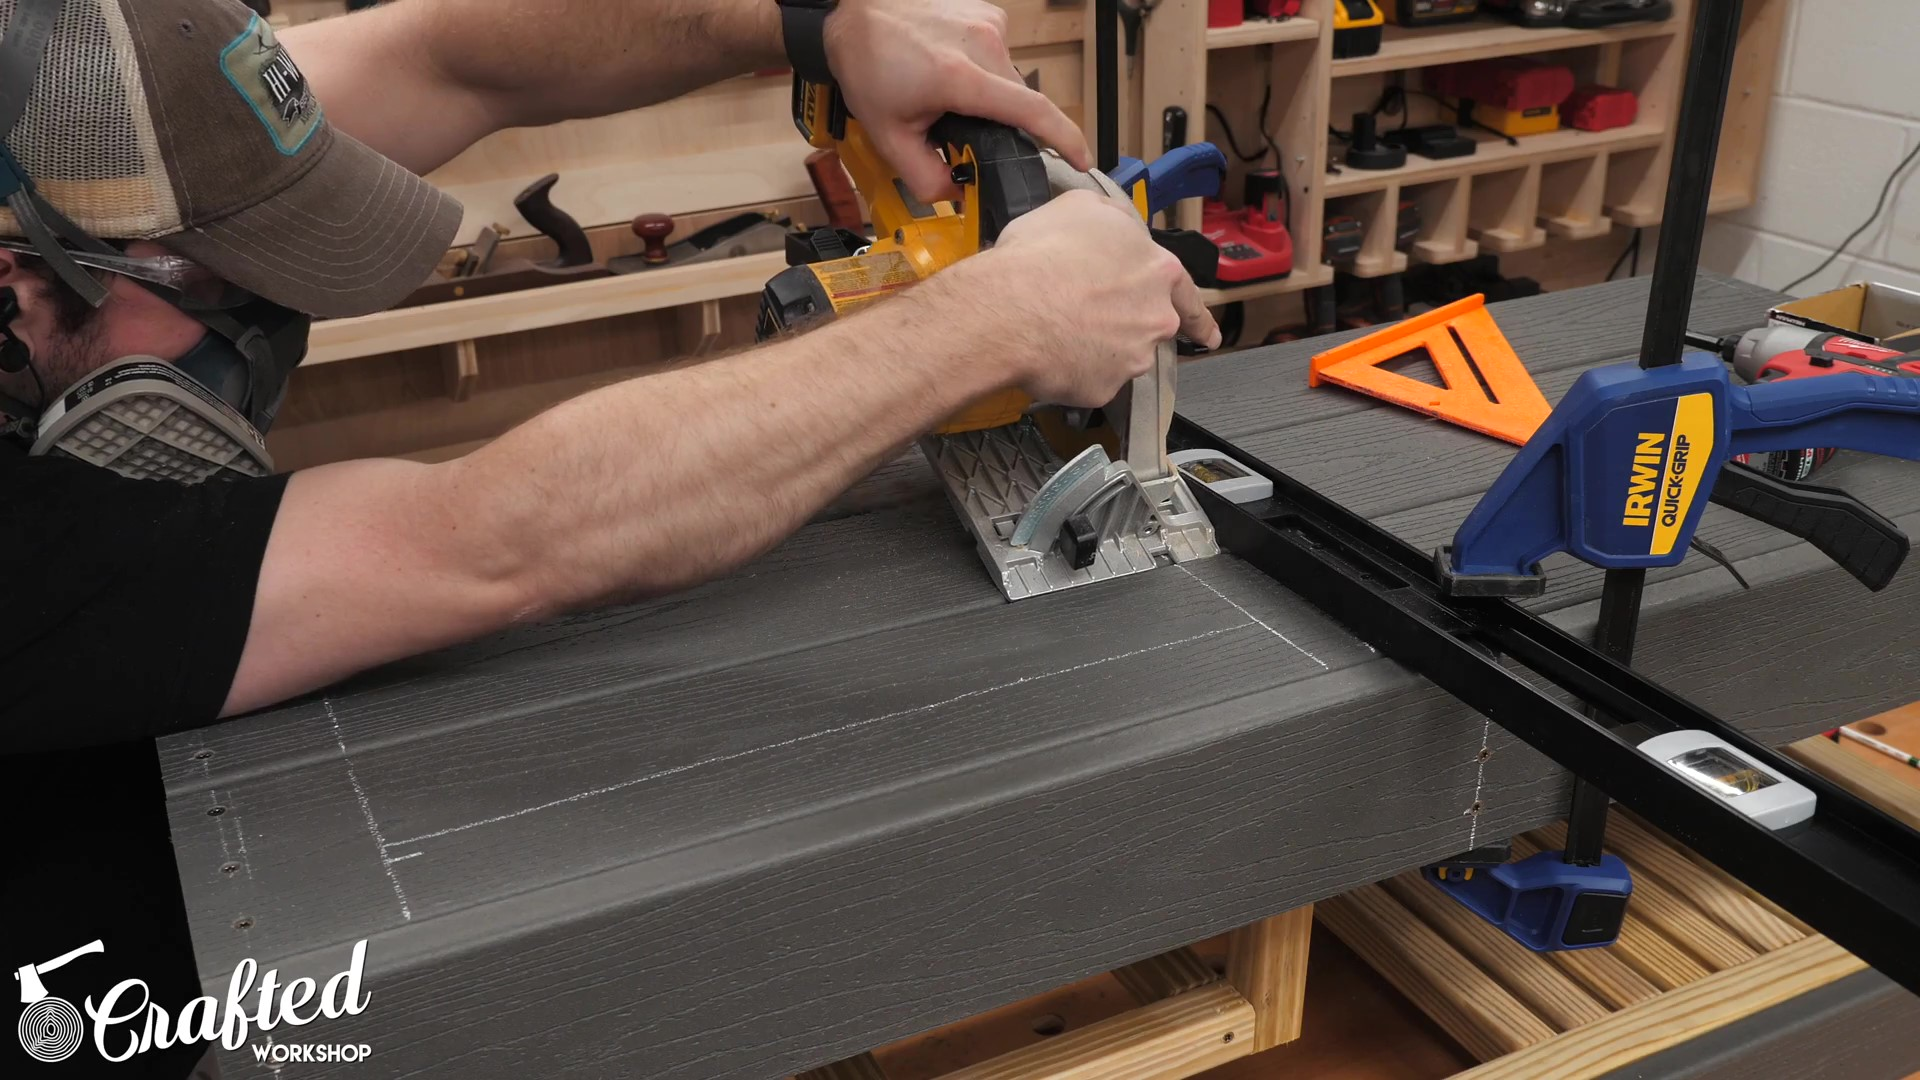 Making a plunge cut with a circular saw